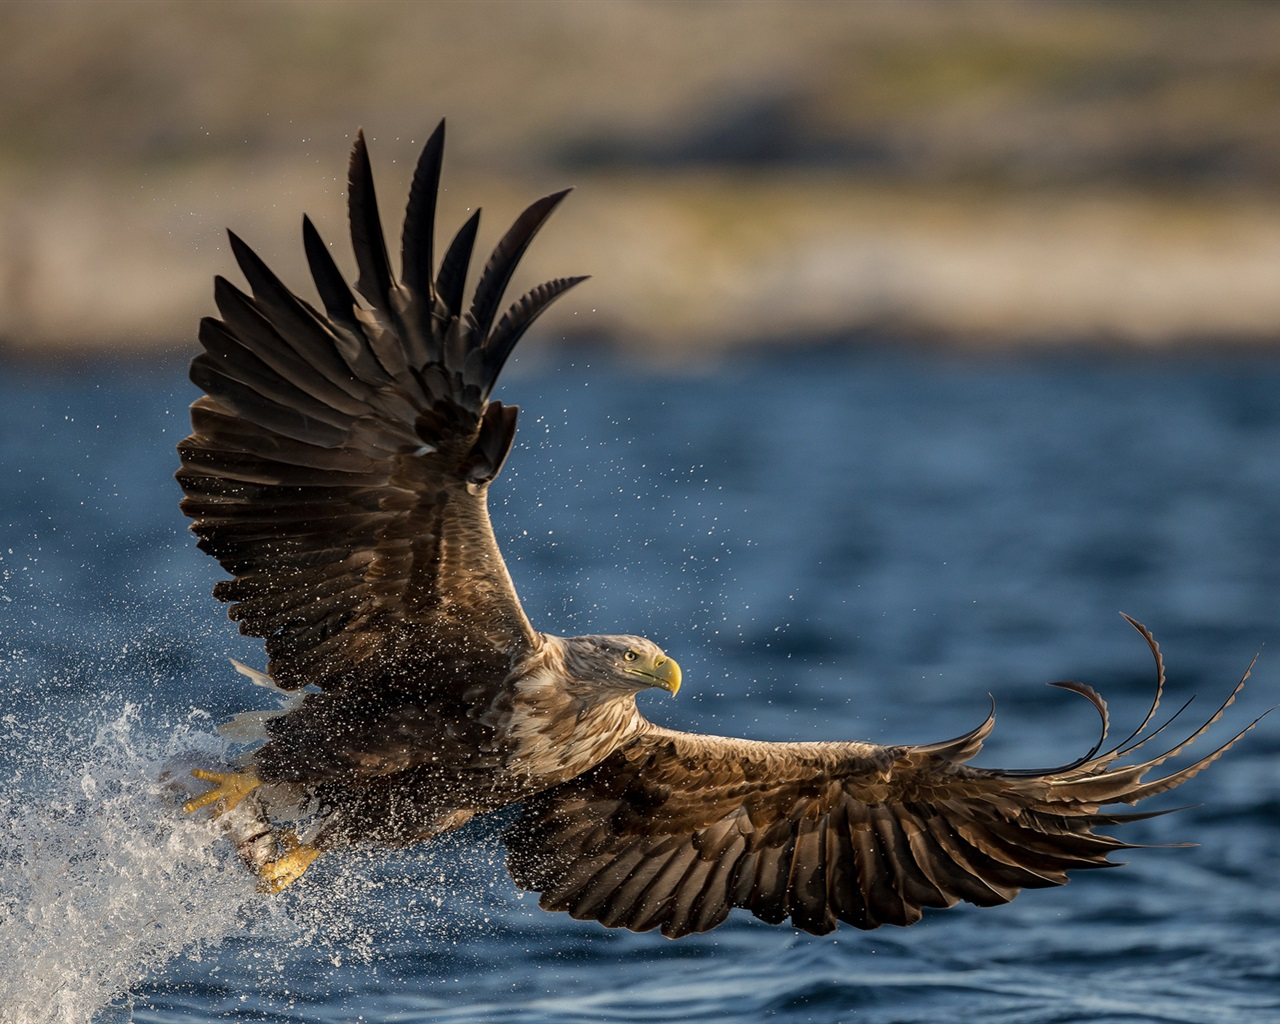 eagle 1280x1024 wallpaper - photo #21